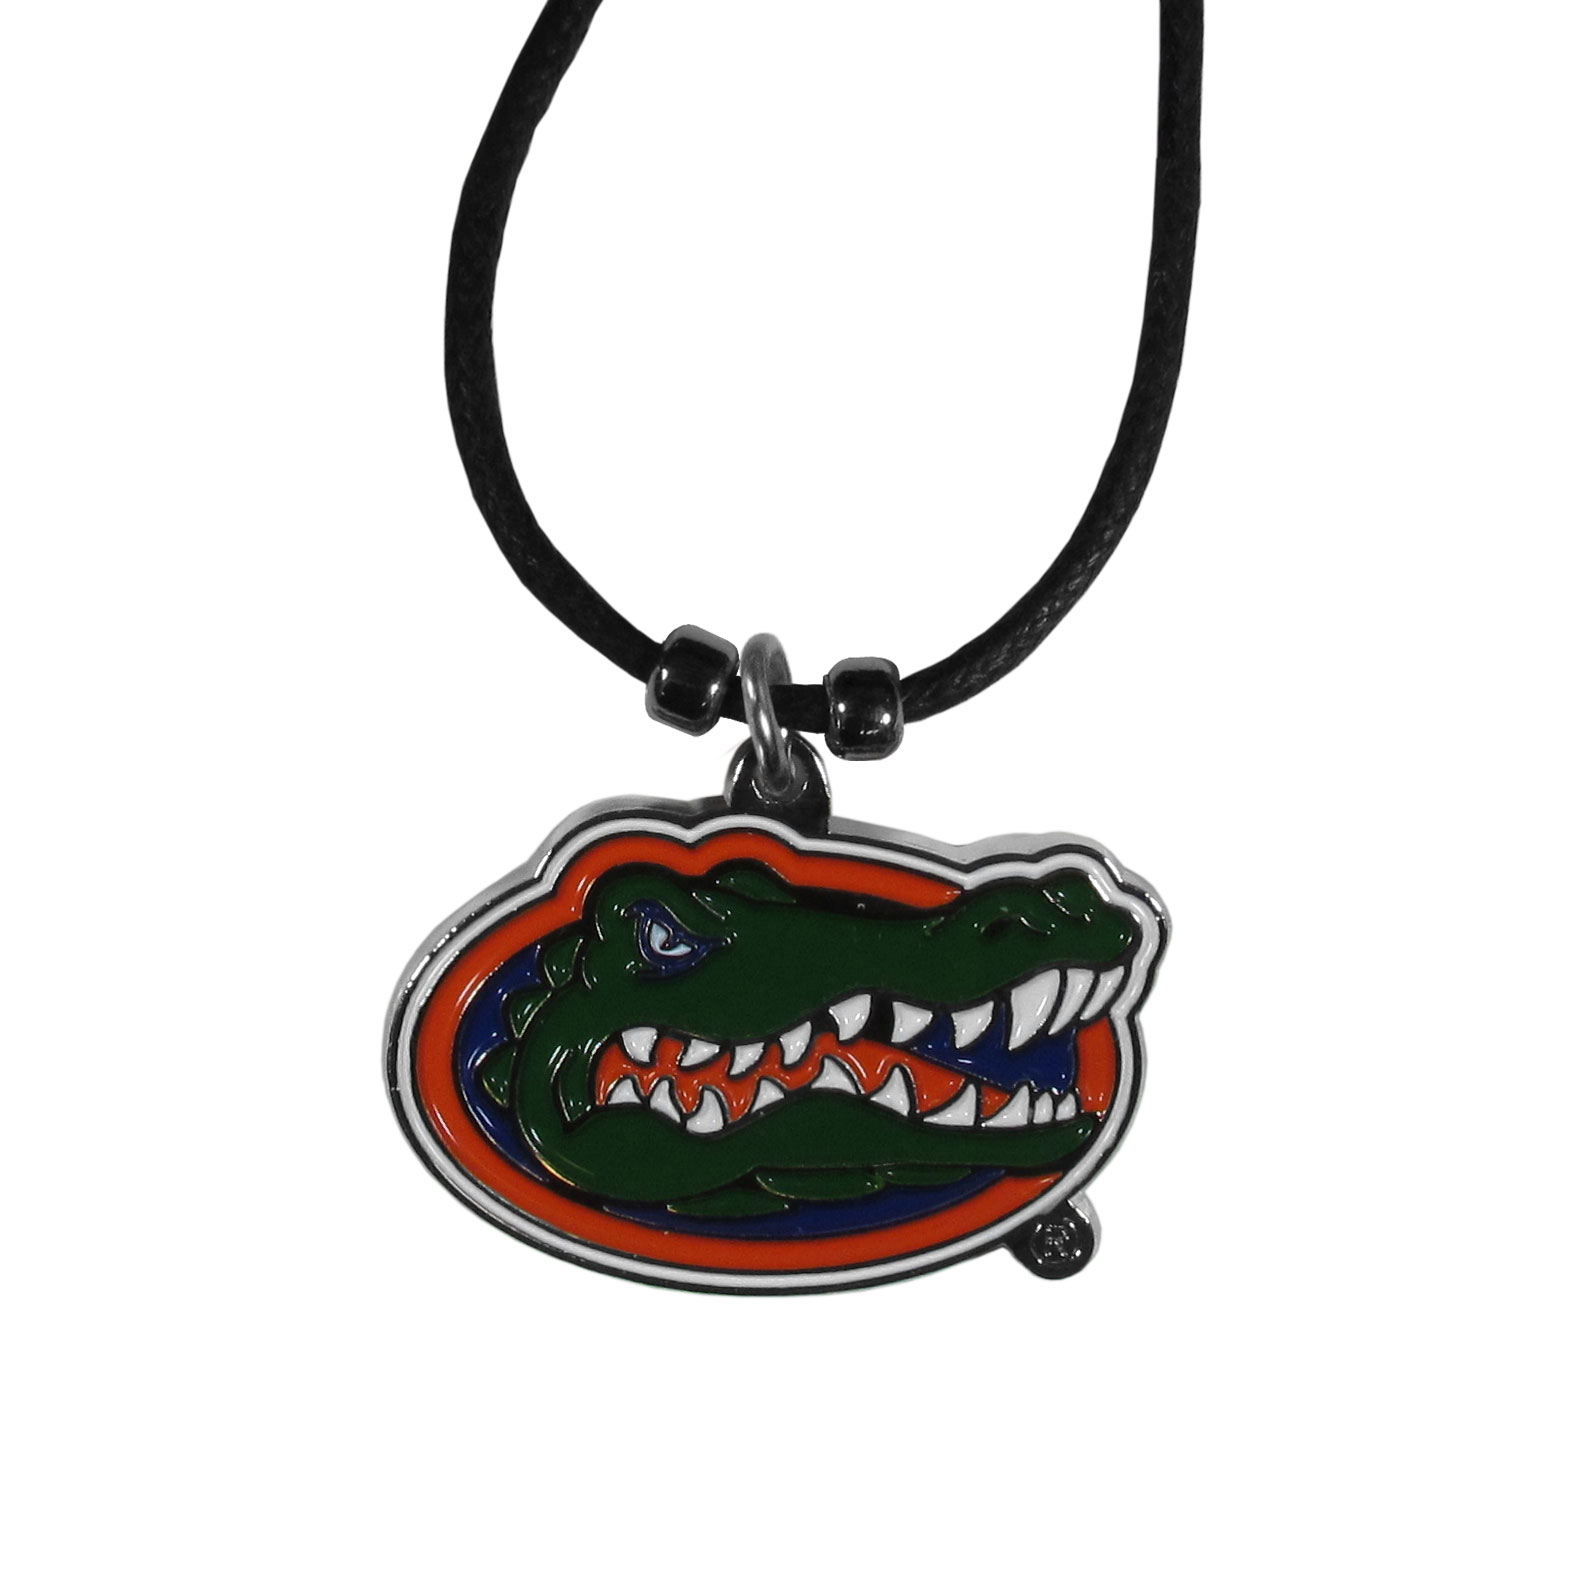 Florida Gators Cord Necklace - This classic style cotton cord necklace features an extra large Florida Gators pendant on a 21 inch cord.